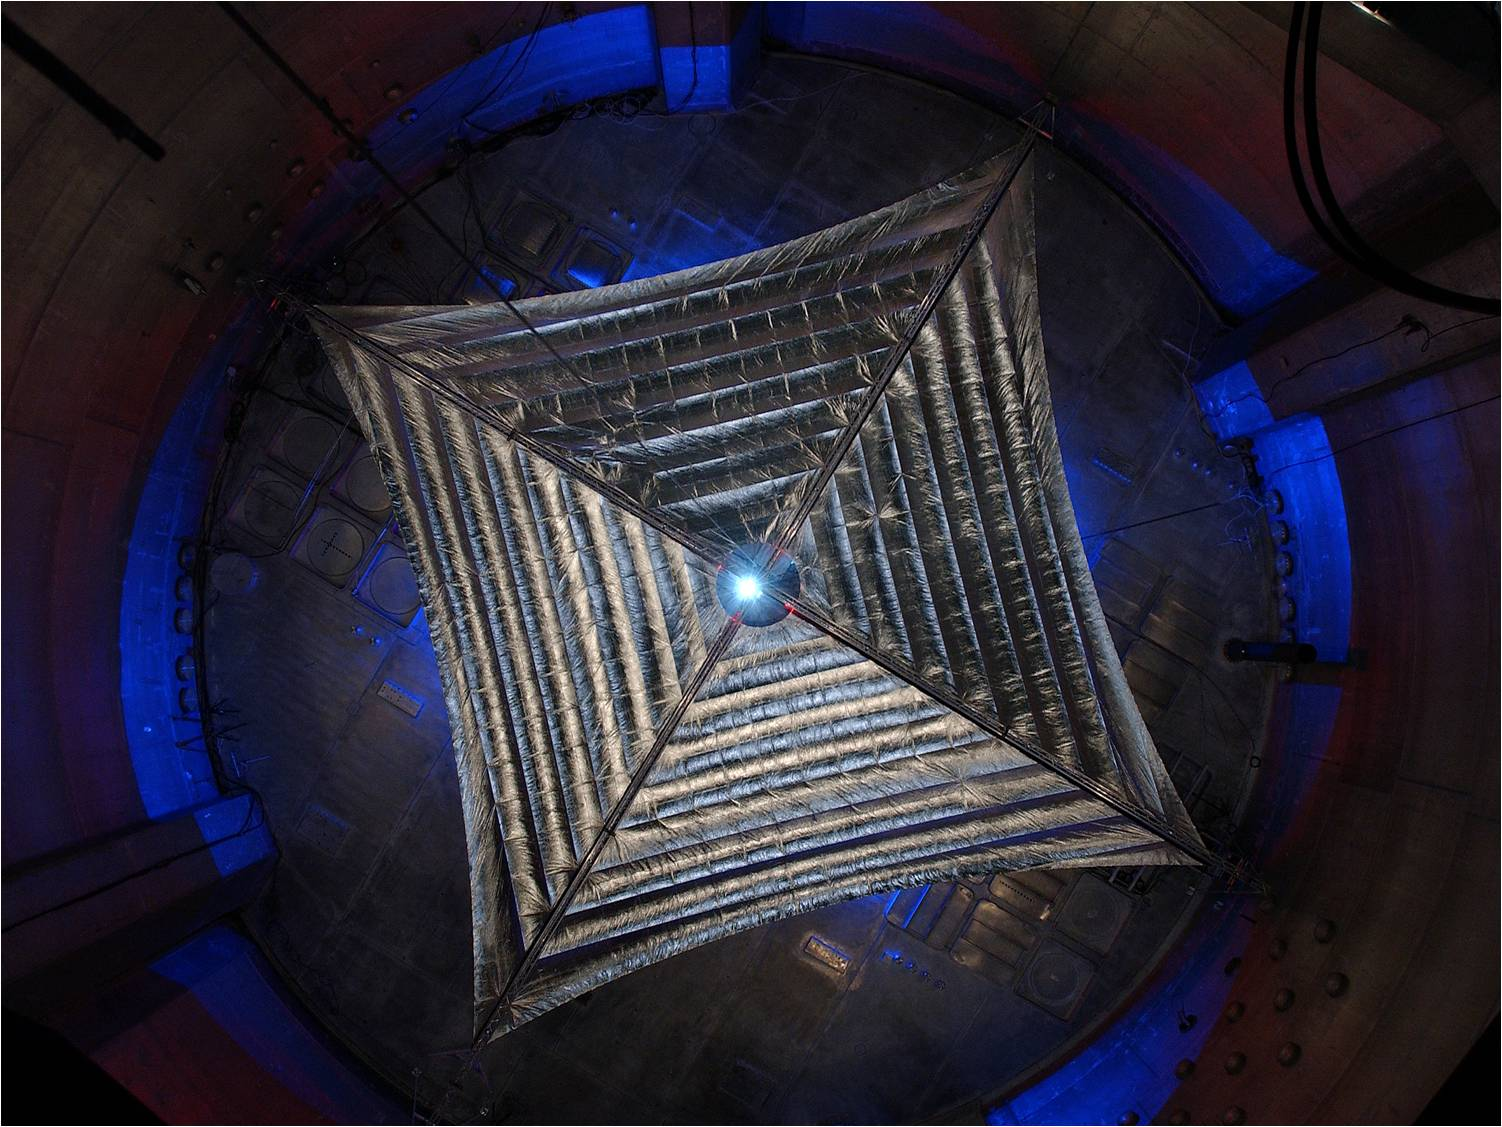 This is a picture of the Sunjammer solar sail being tested, before the project was canceled. Image Credit: NASA/L'Garde